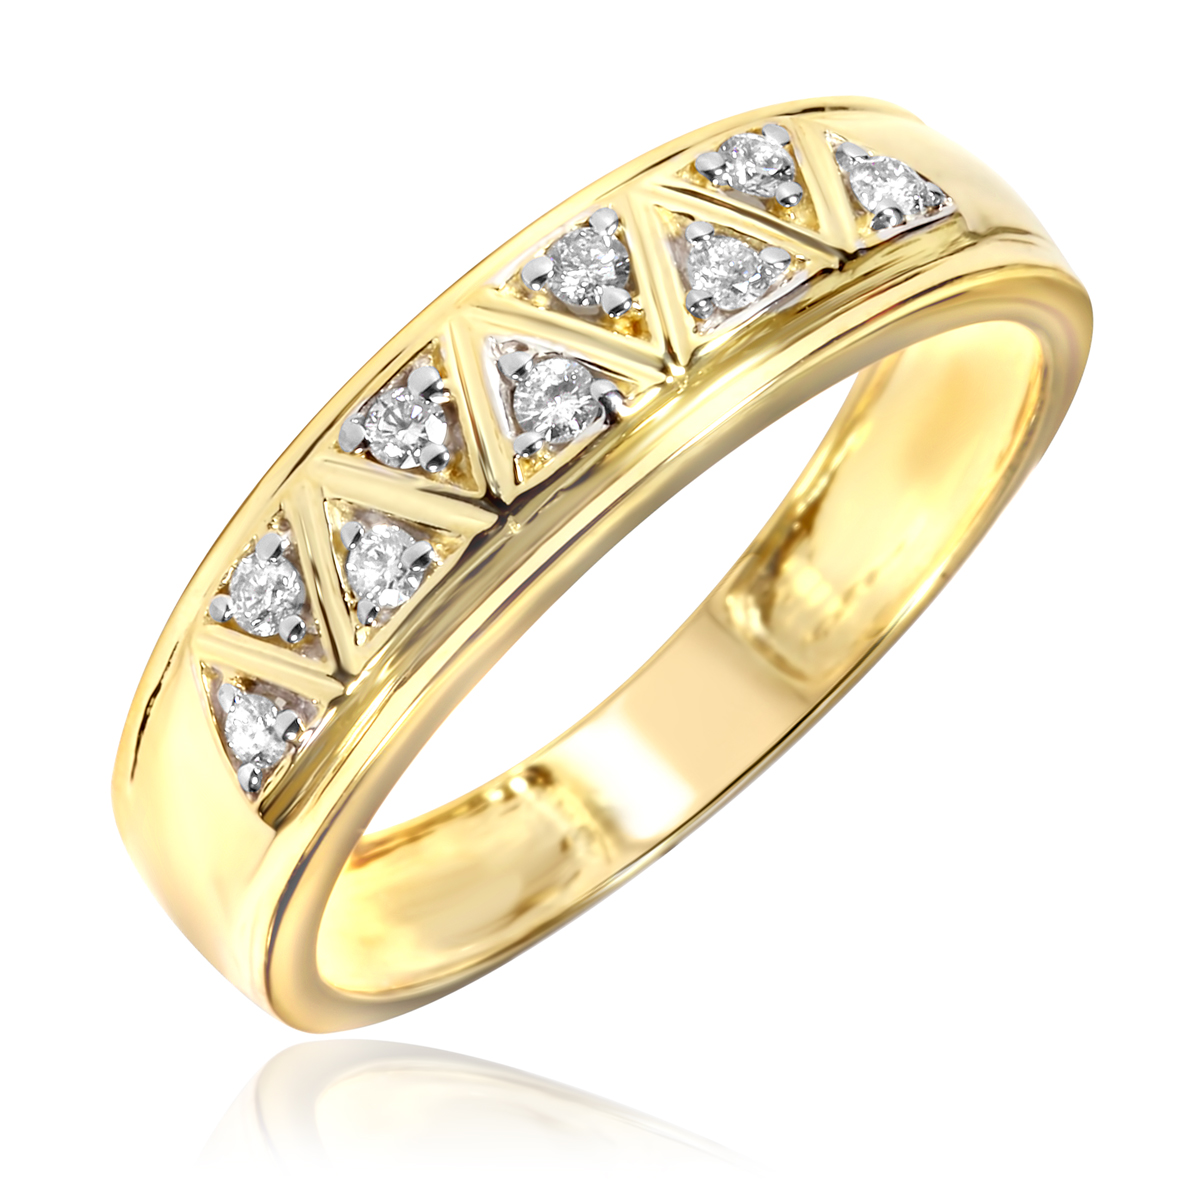 mens wedding band - Gold Wedding Rings For Men